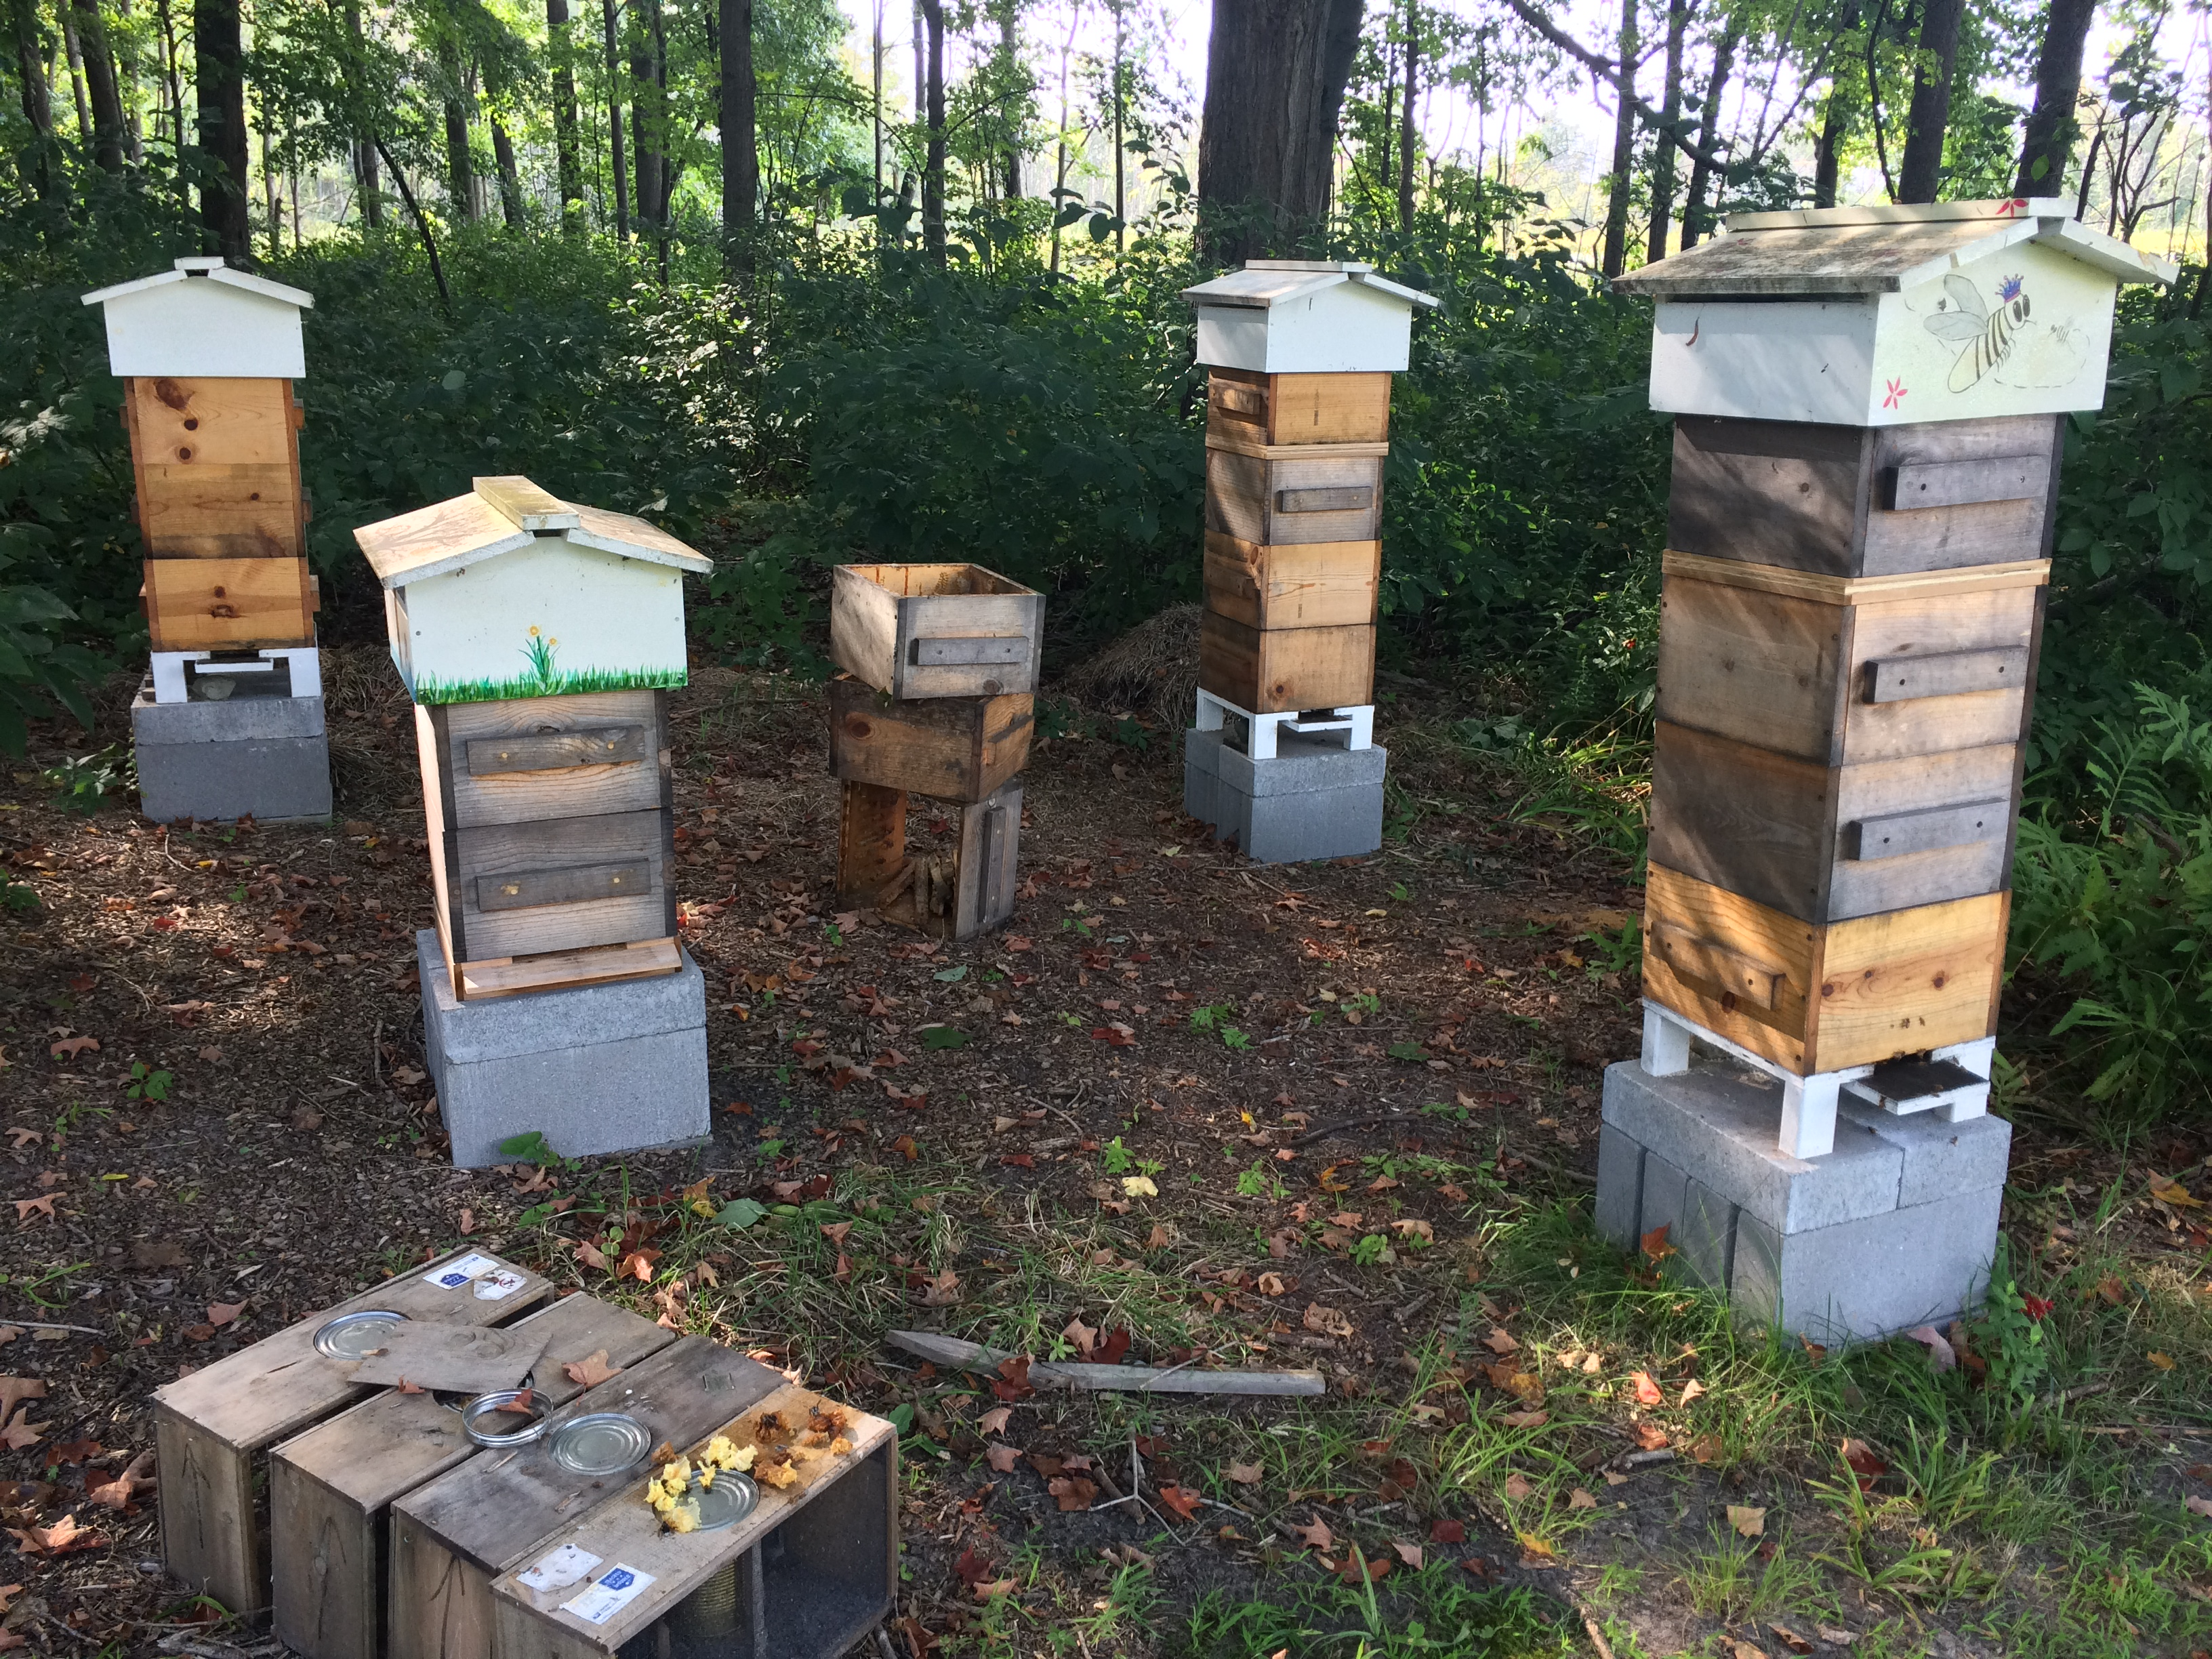 About the Warre Hive